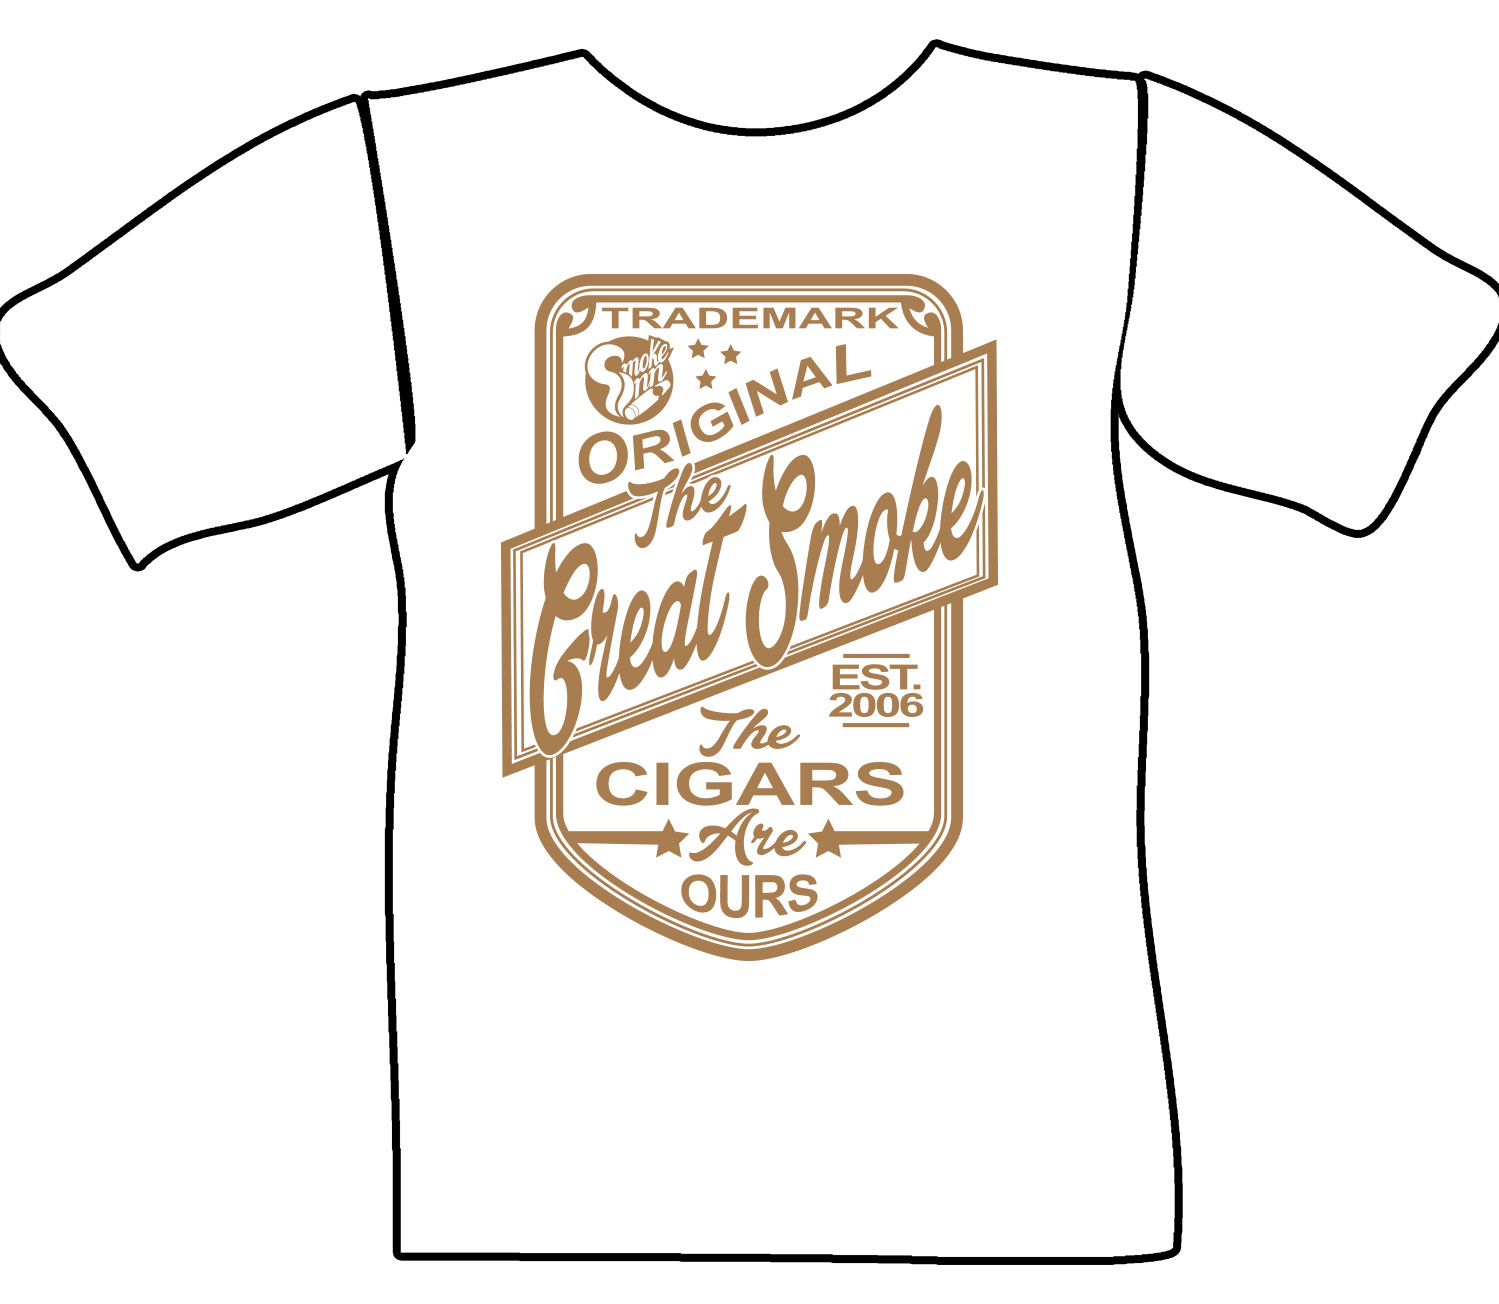 The Cigars Are Ours T-Shirt